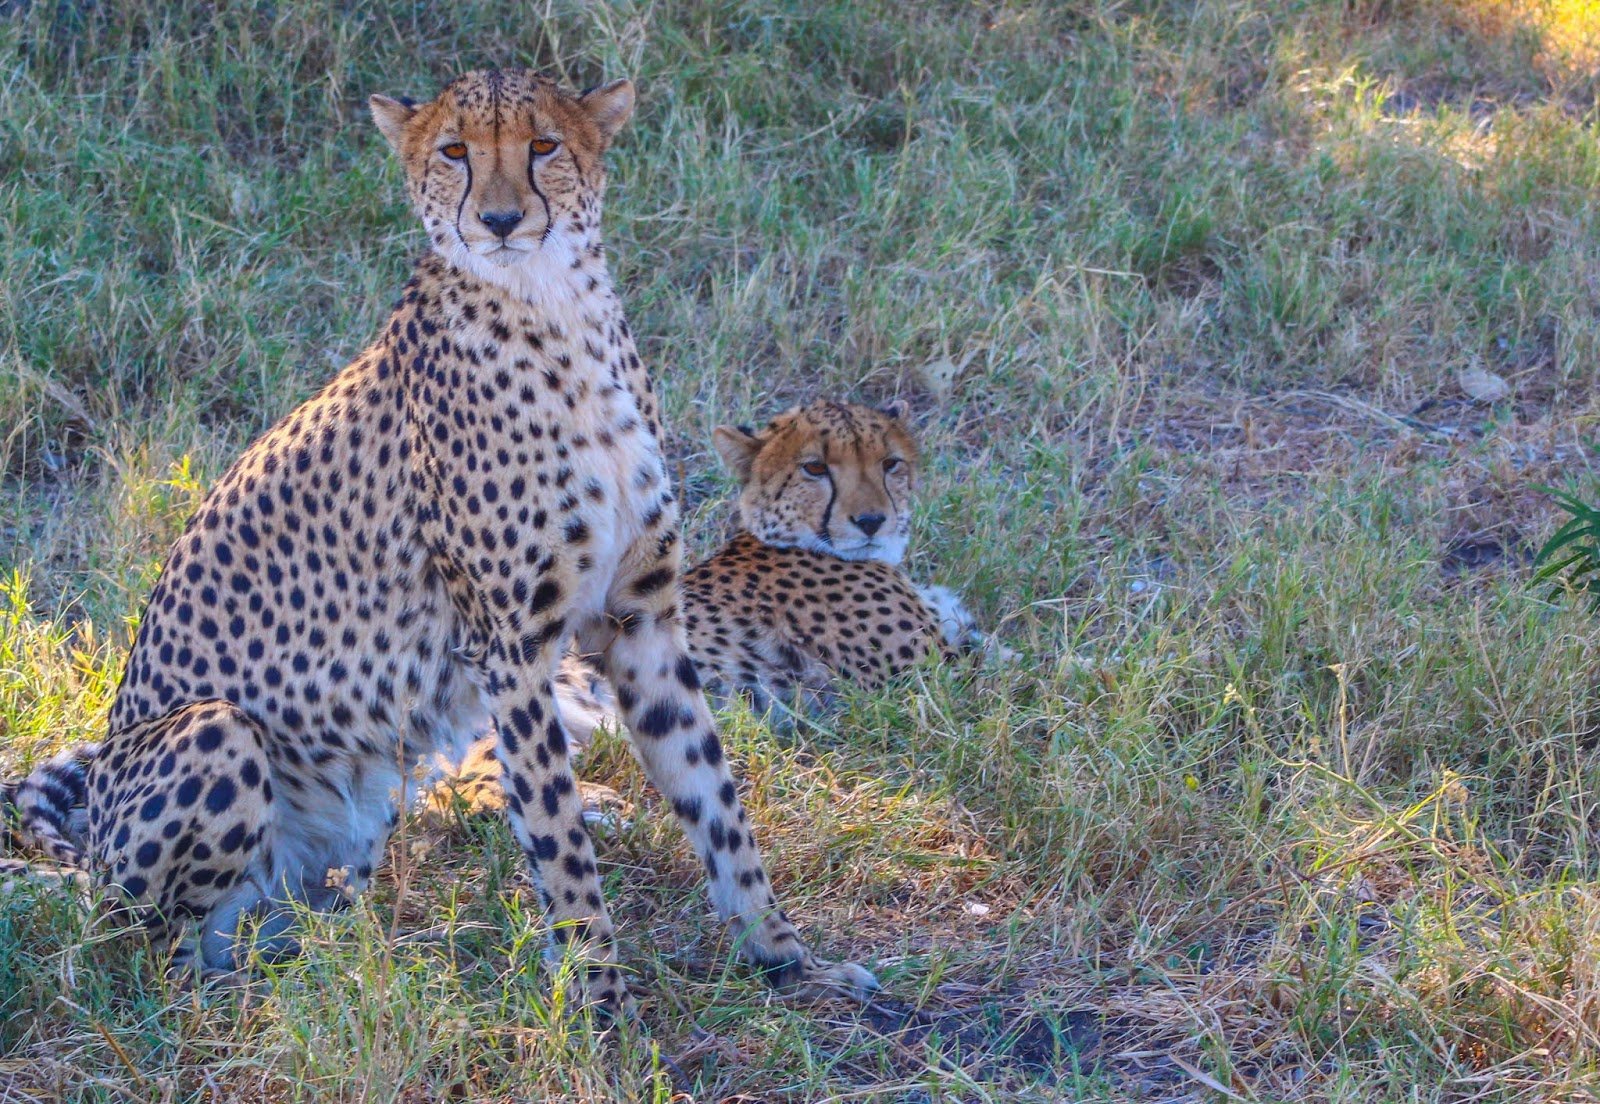 Cannundrums Southern African Cheetah